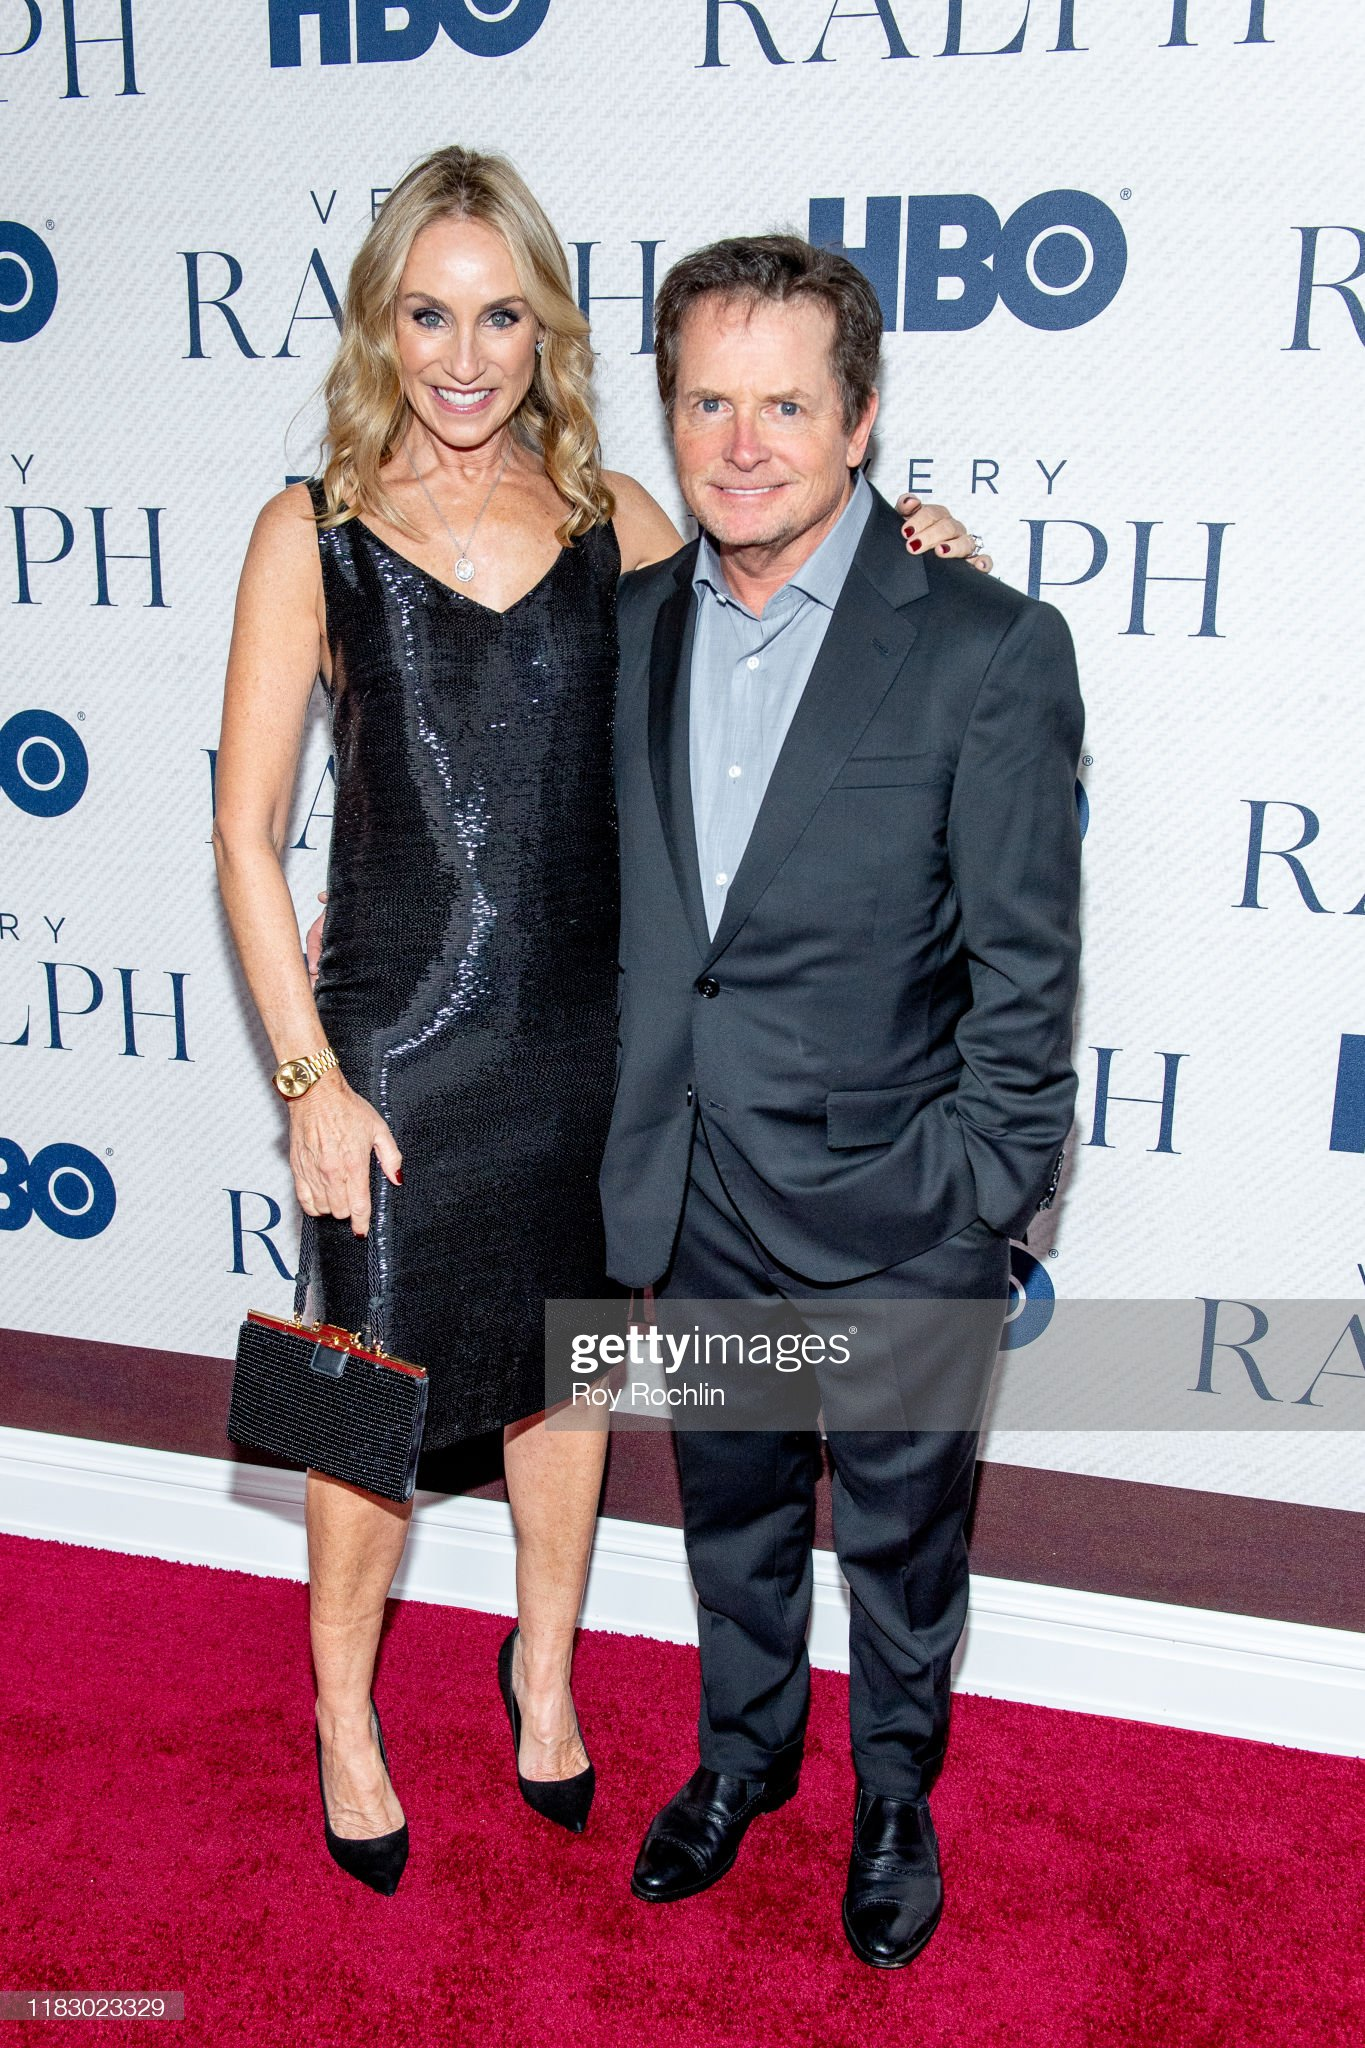 ¿Cuánto mide Michael J Fox? - Altura - Real height Tracy-pollan-and-michael-j-fox-attend-hbos-very-ralph-world-premiere-picture-id1183023329?s=2048x2048